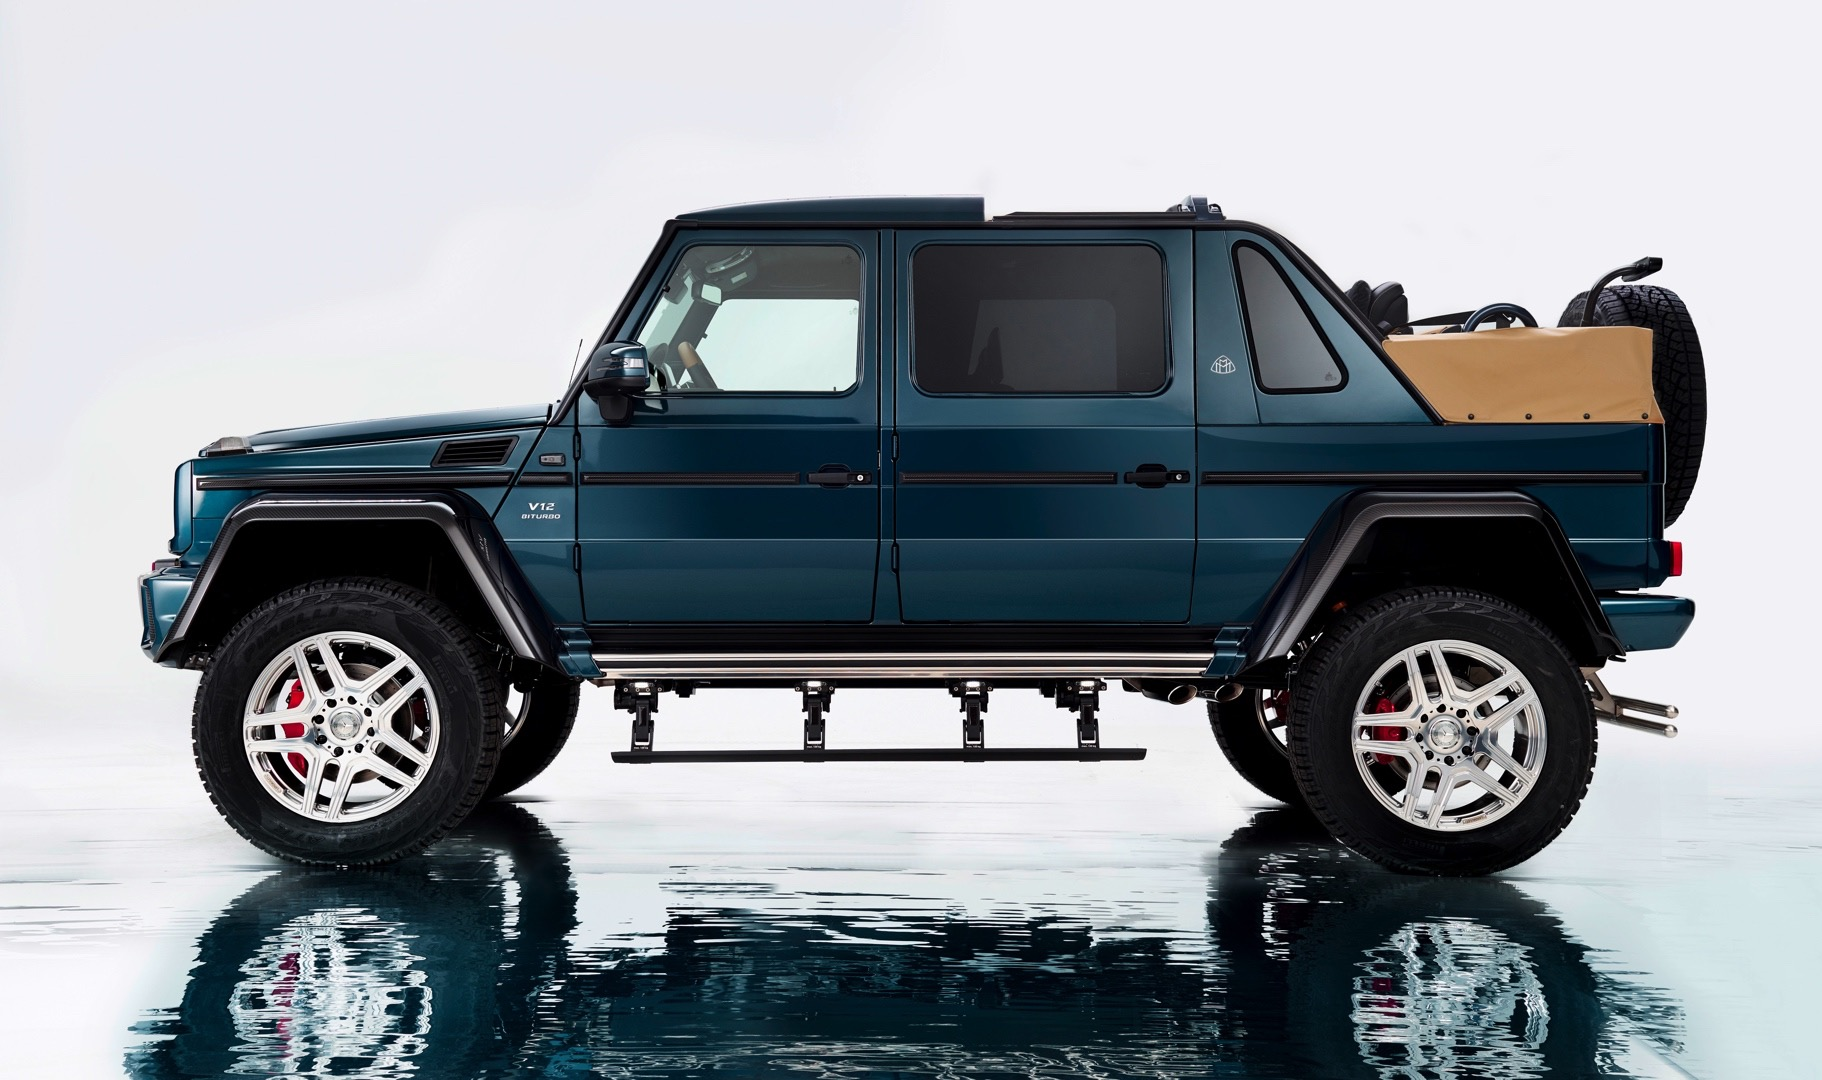 https://s1.cdn.autoevolution.com/images/news/2018-mercedes-maybach-g650-landaulet-is-strictly-limited-to-99-units-115377_1.jpg